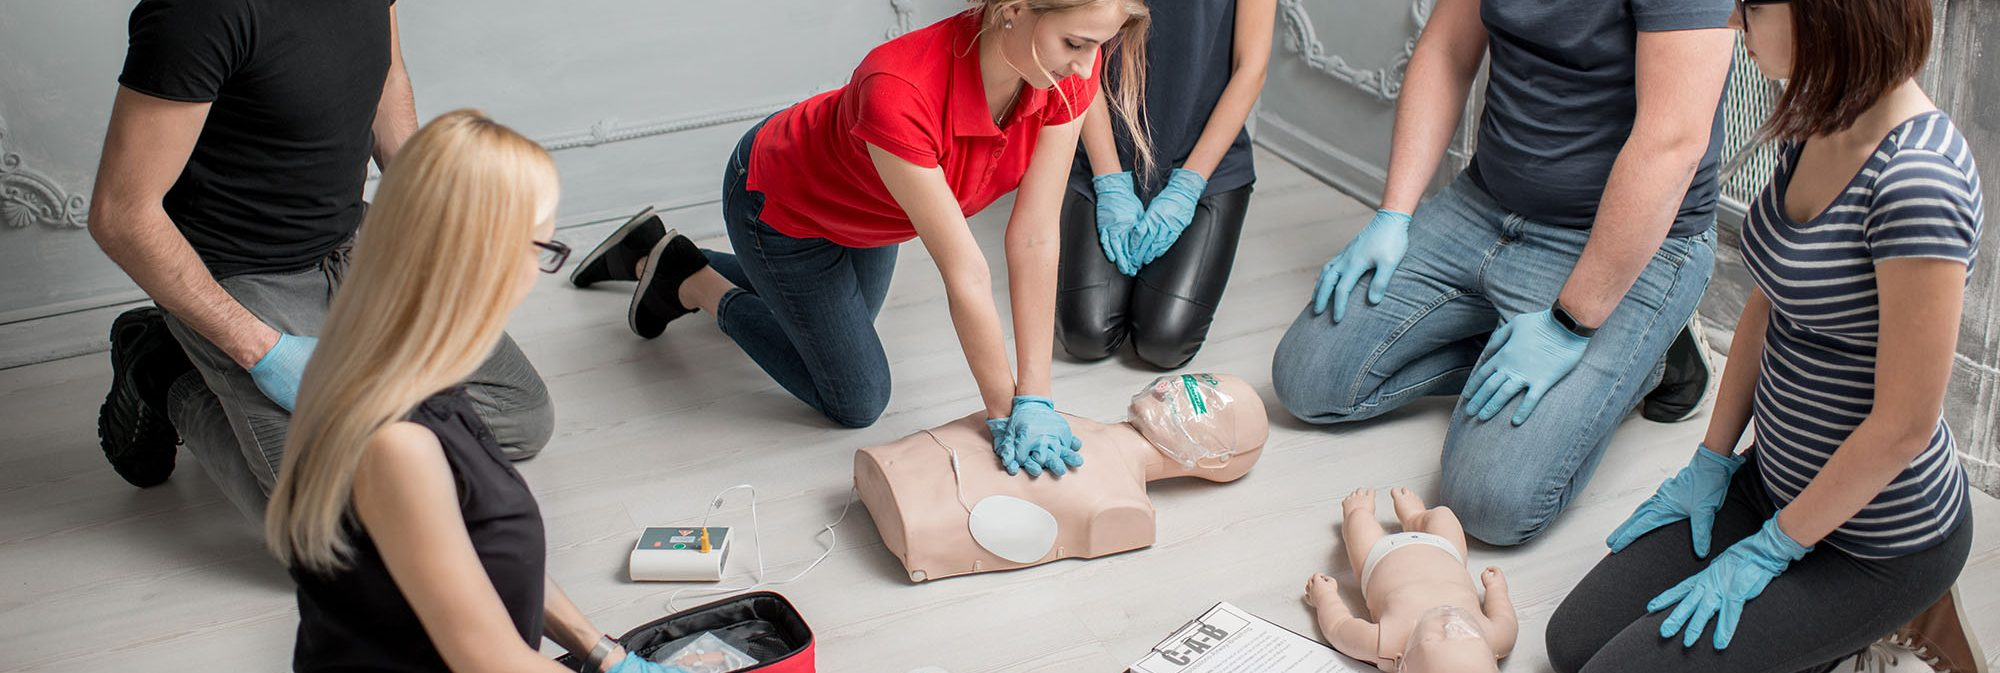 group of people learning CPR